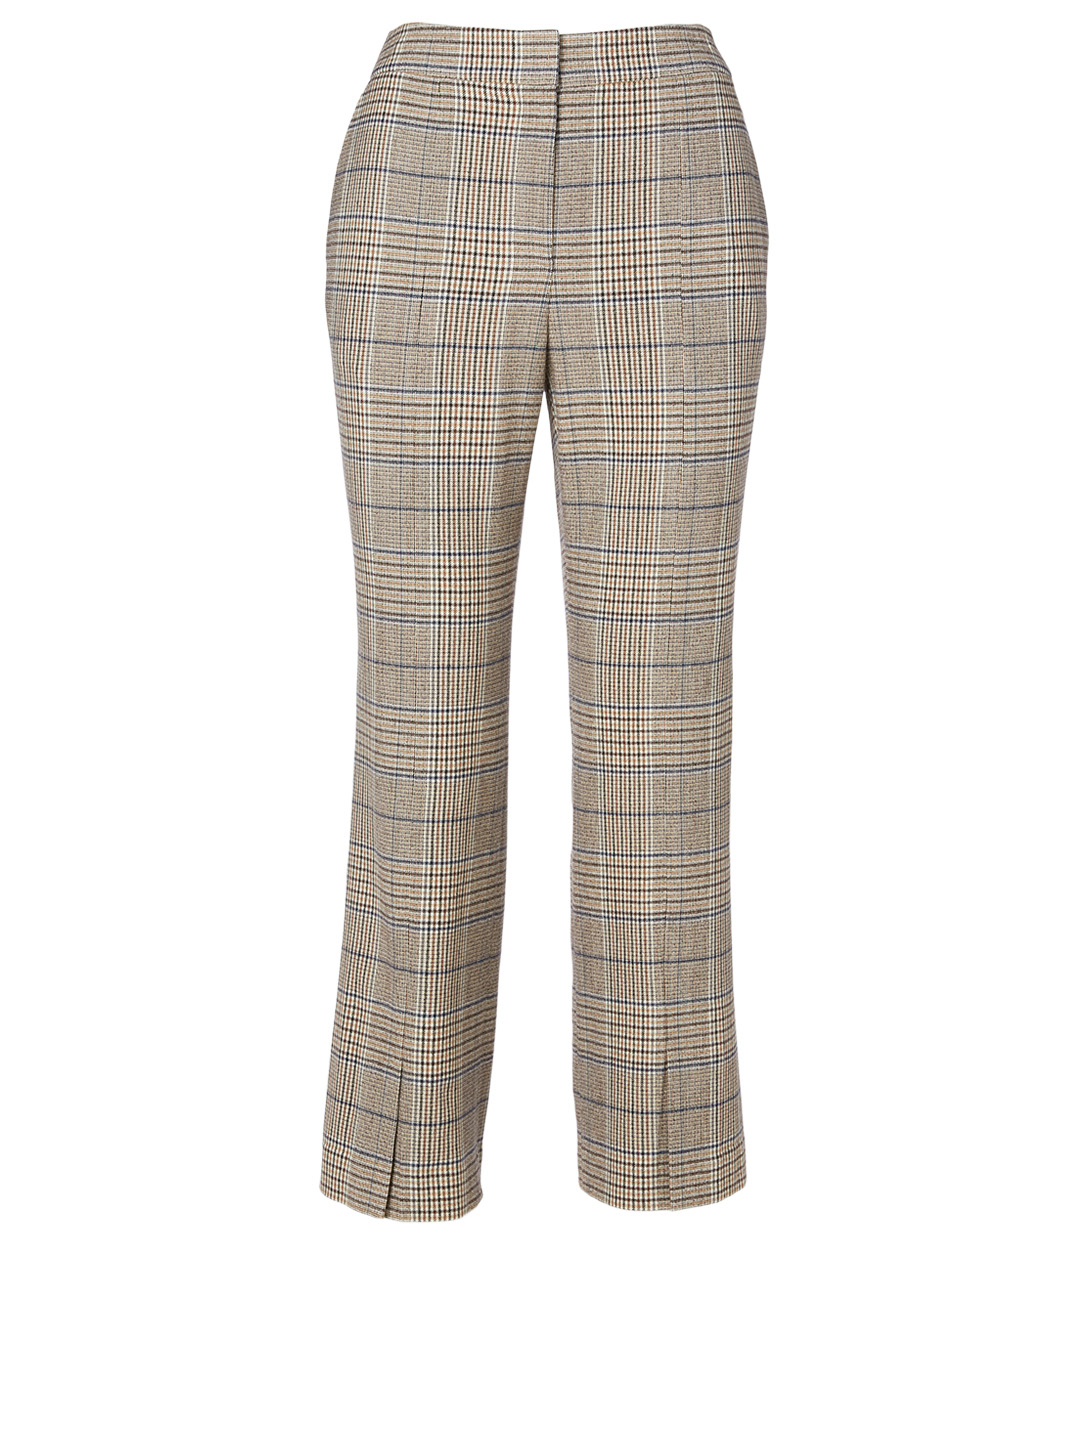 KUHO Wool-Blend Flare Pants In Plaid Print Women's Neutral